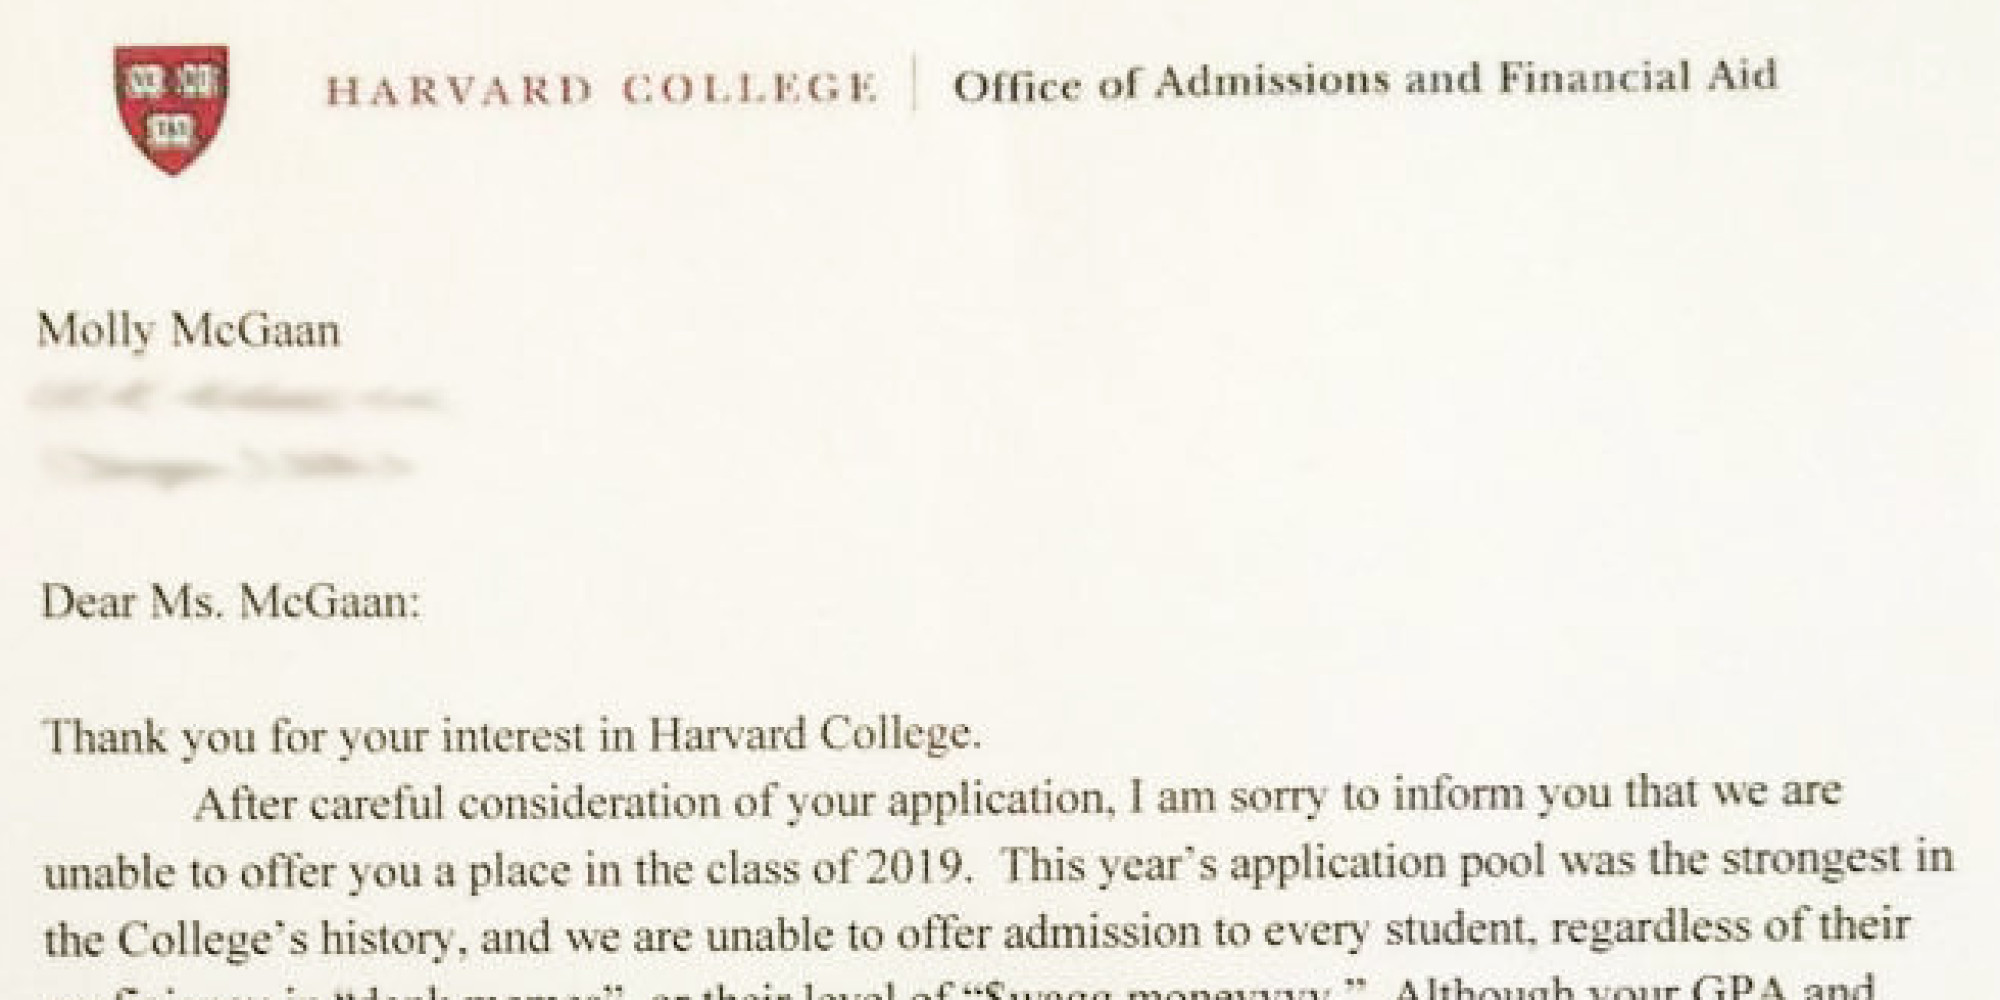 ivy league admissions essays best ideas about college admission  sample essays accepted by harvard ivy league admissions are a sham confessions of a harvard gatekeeper